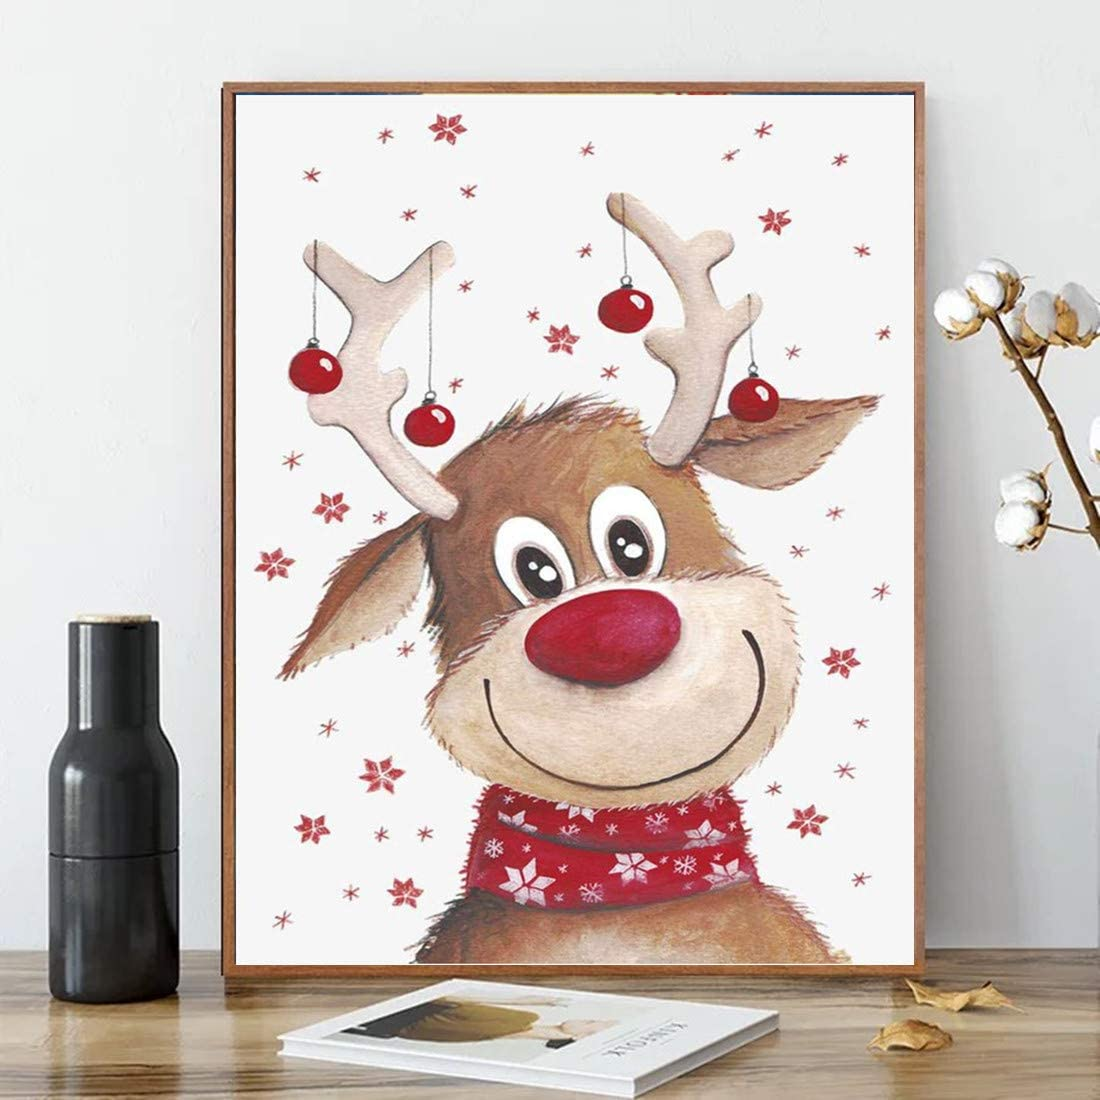 Amazon Com Acengxi Christmas Paint By Numbers Diy Deer Canvas Santa Claus Acrylic Painting Home Decor Reindeer For Adults Kids 16x20in